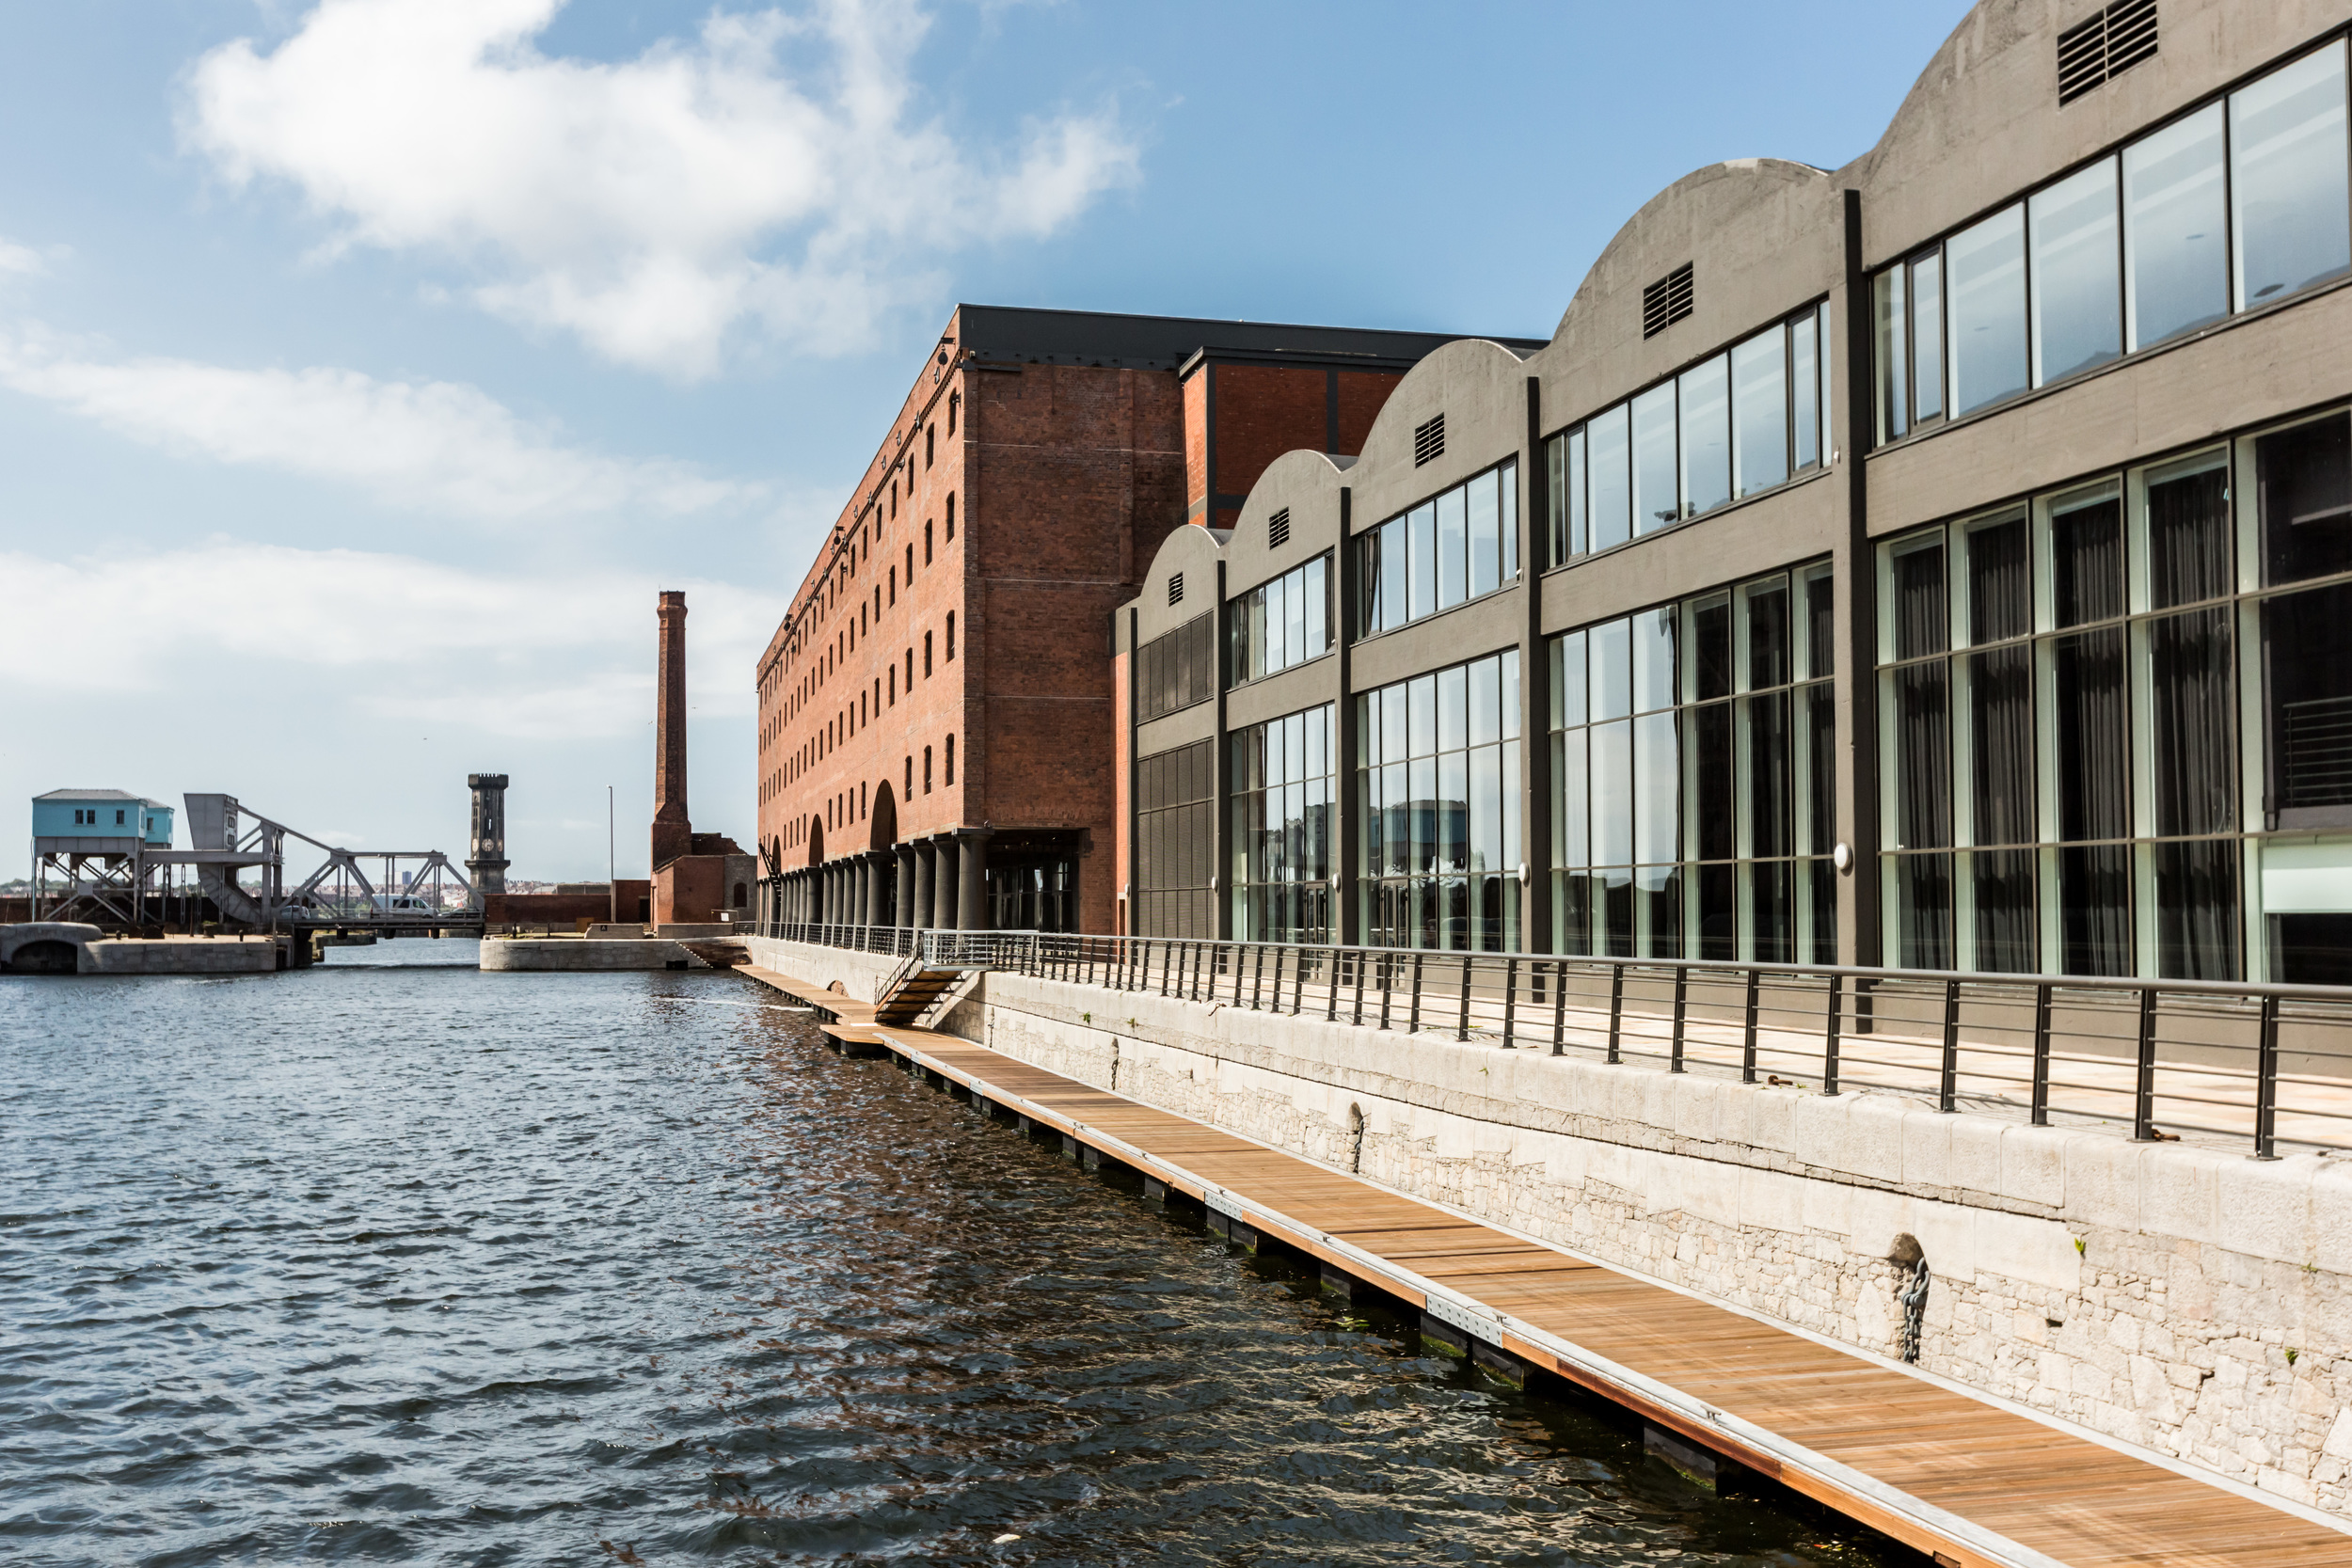 Waterfront location at the Rum Warehouse event space in Liverpool's Stanley Dock